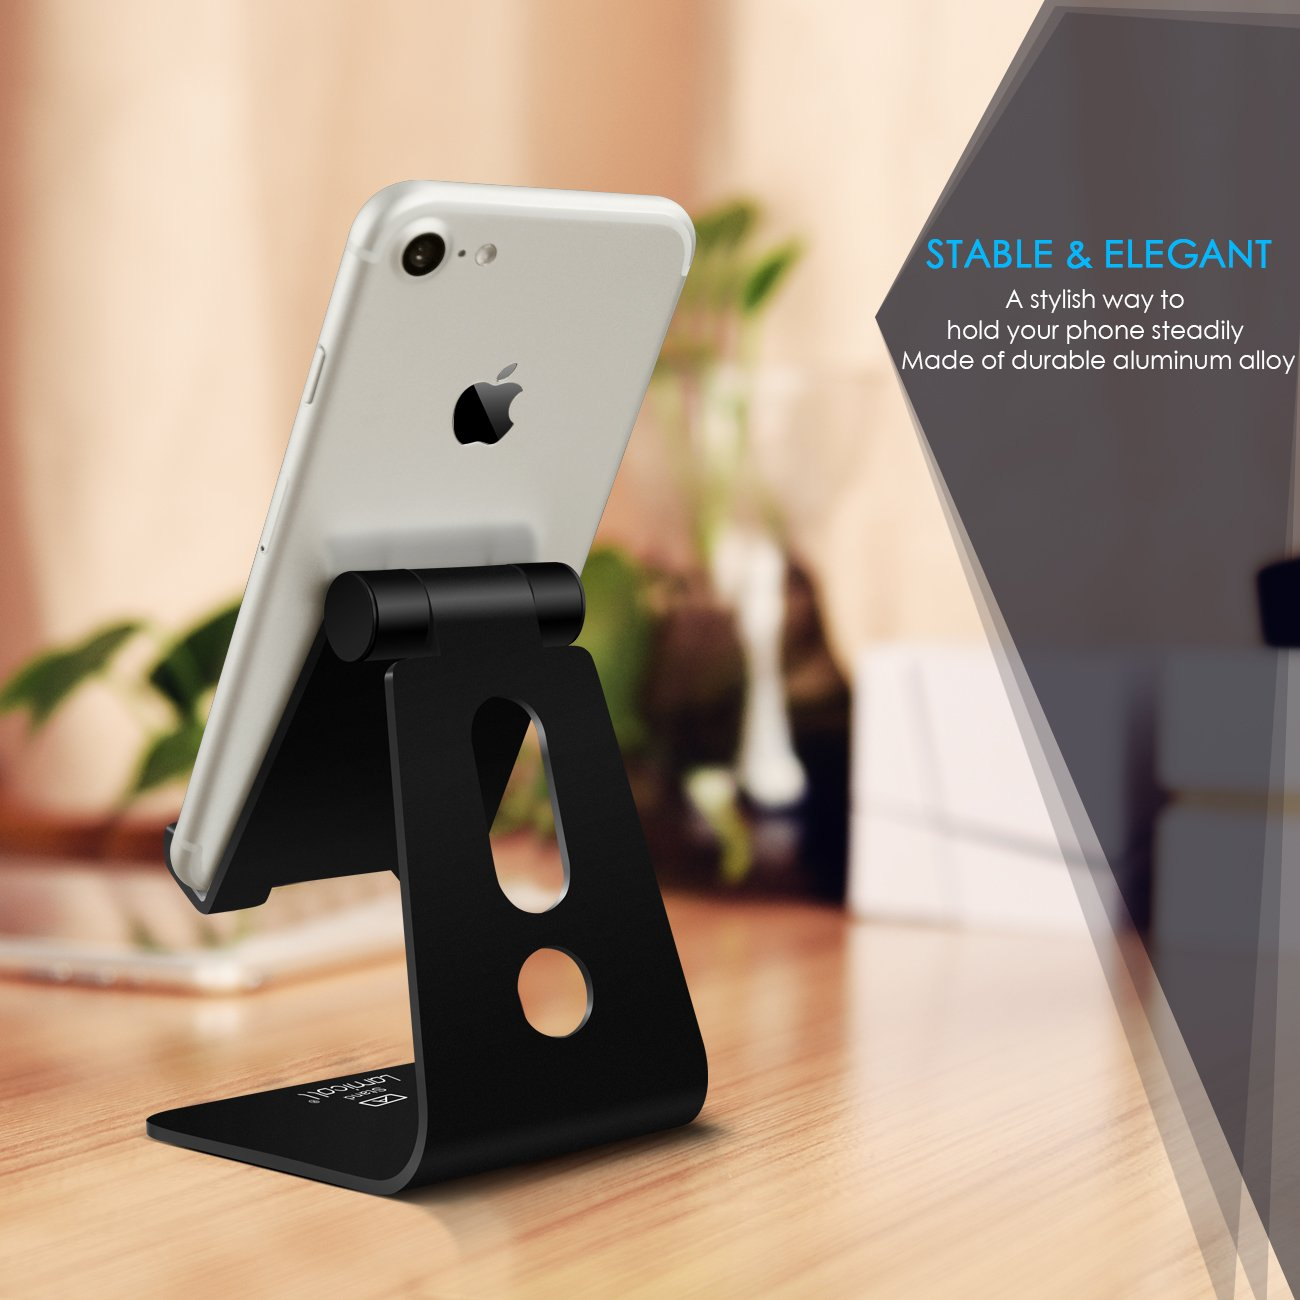 Adjustable Cell Phone Stand, Lamicall Phone Stand : [Update Version] Cradle, Dock, Holder Compatible with Switch, Phone 8 X 7 6 6s Plus 5 5s 5c Charging, Accessories Desk, Android Smartphone - Black by Lamicall (Image #3)